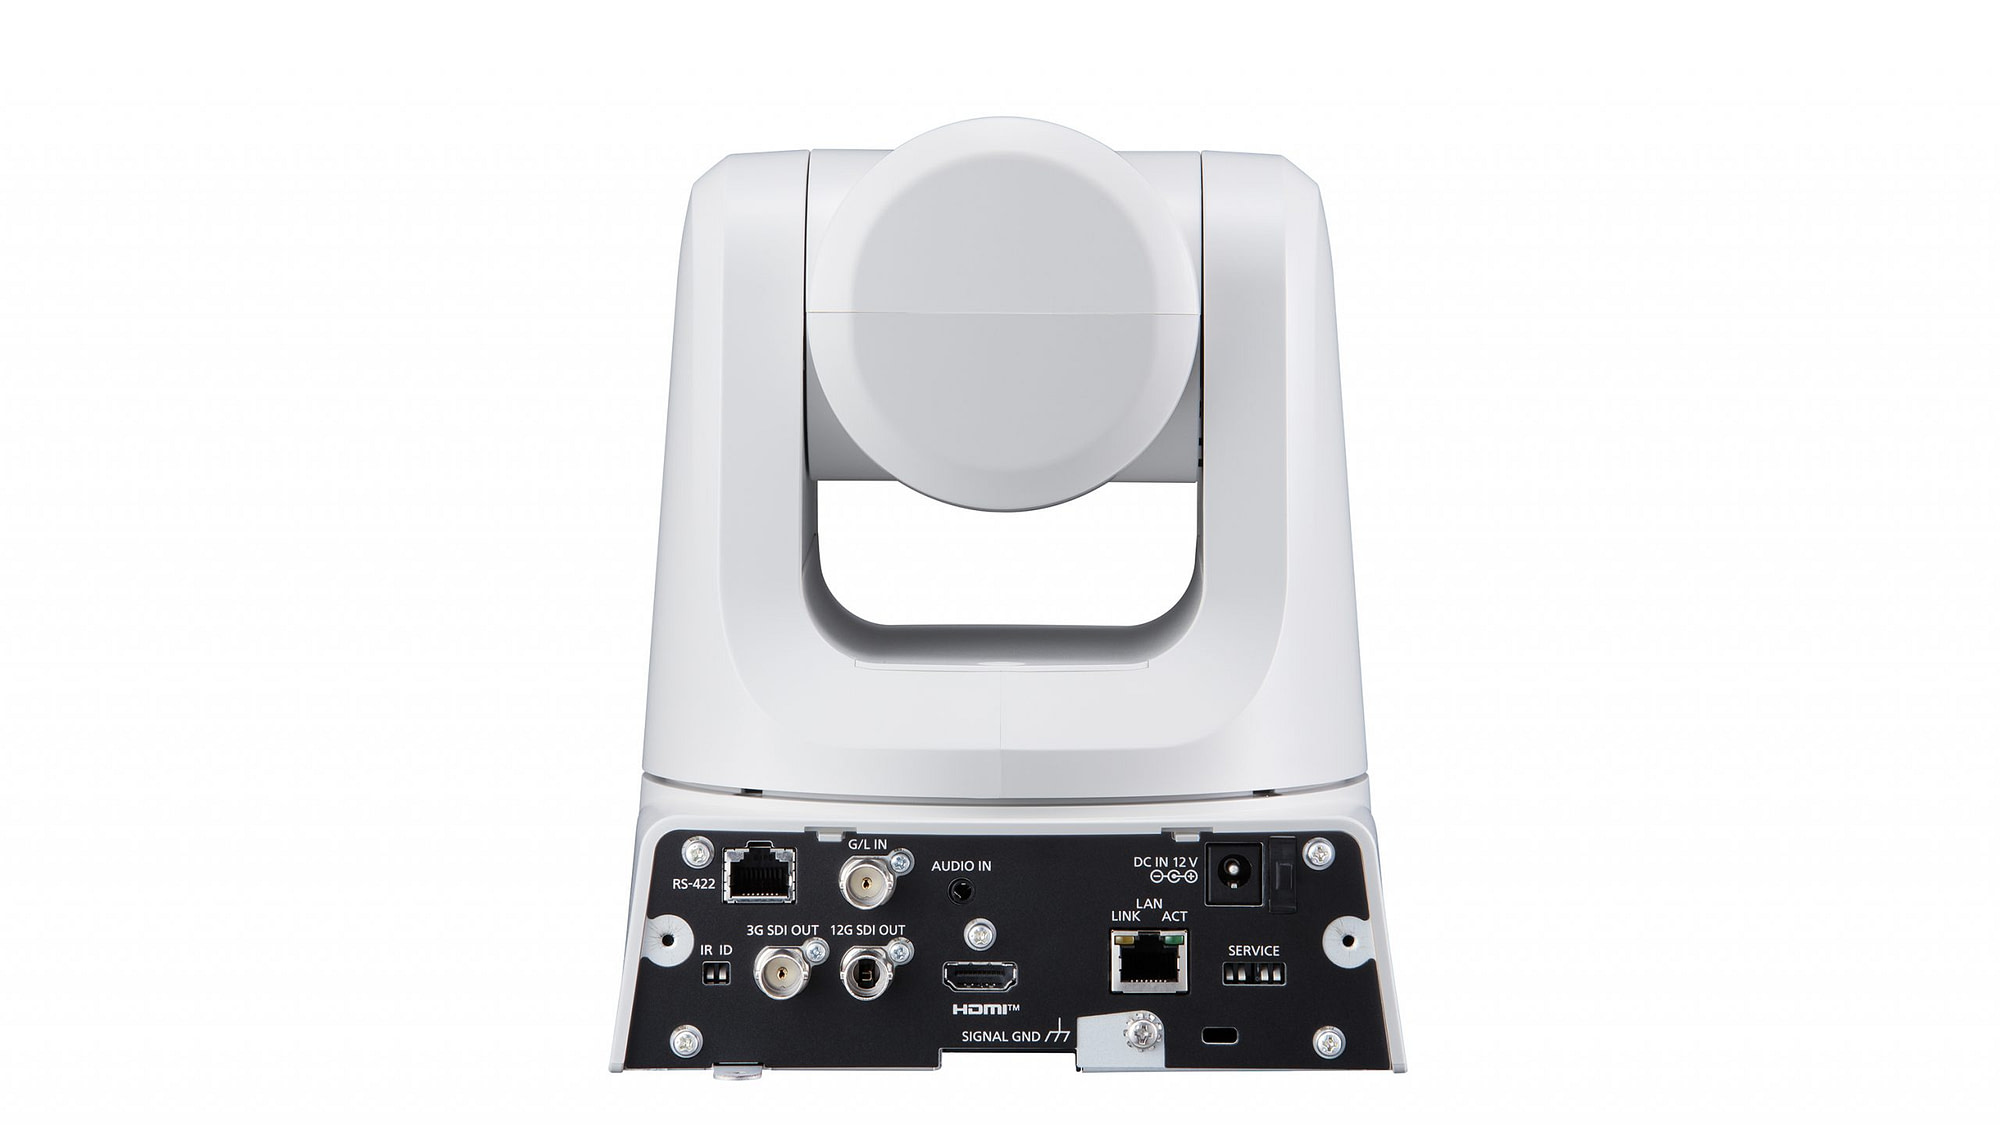 AW-UE100 White Rear Connections